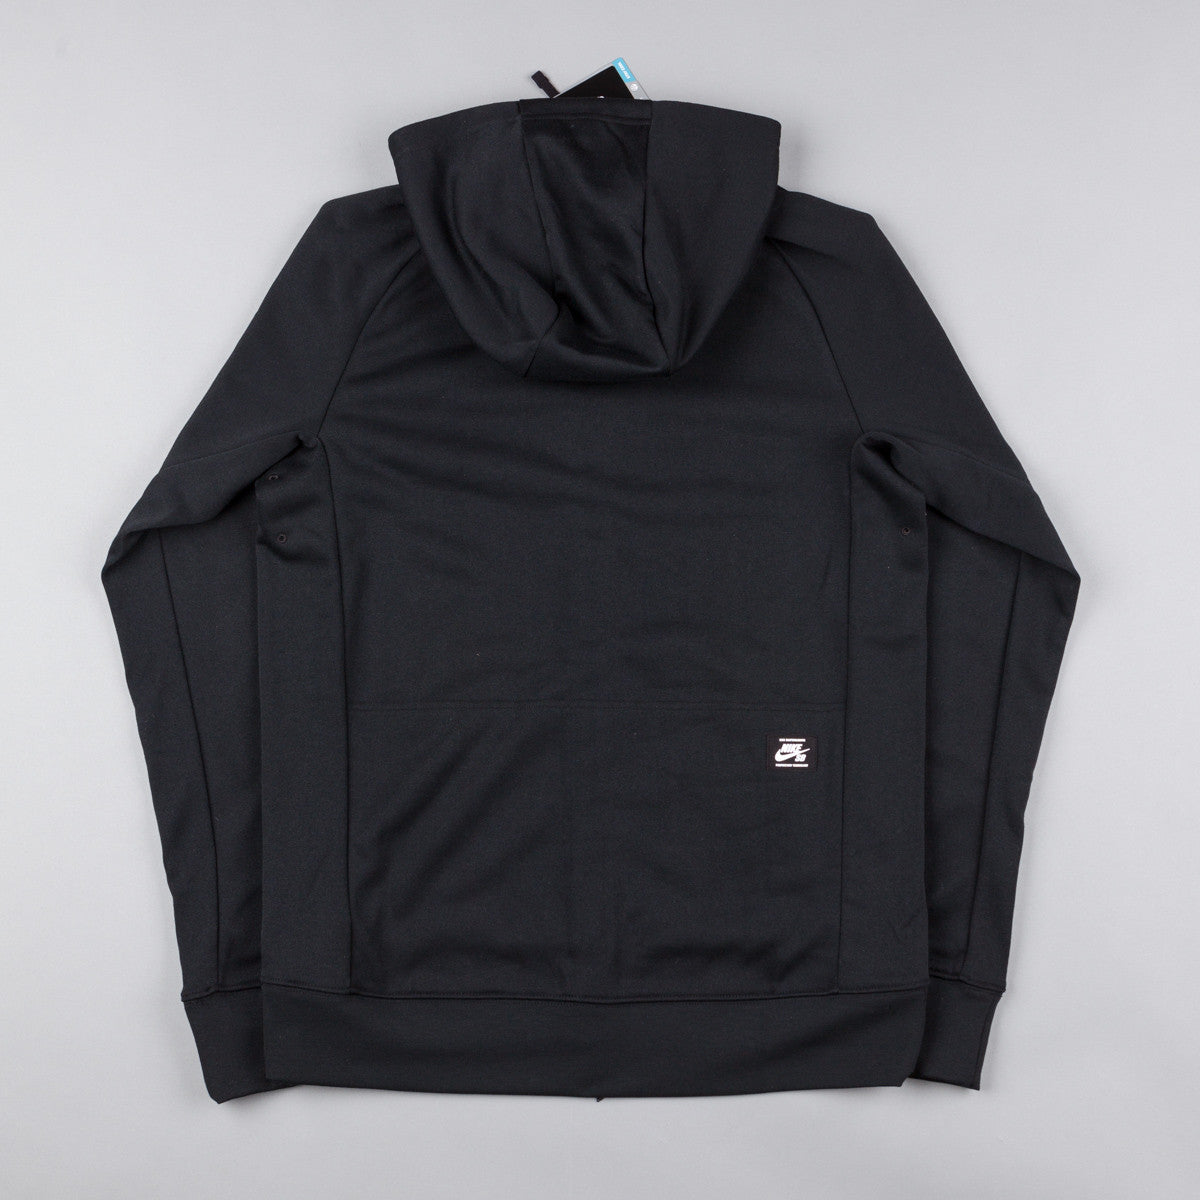 Nike SB Lightweight Everett Dri-Fit Full Zip Hooded Sweatshirt - Black / White